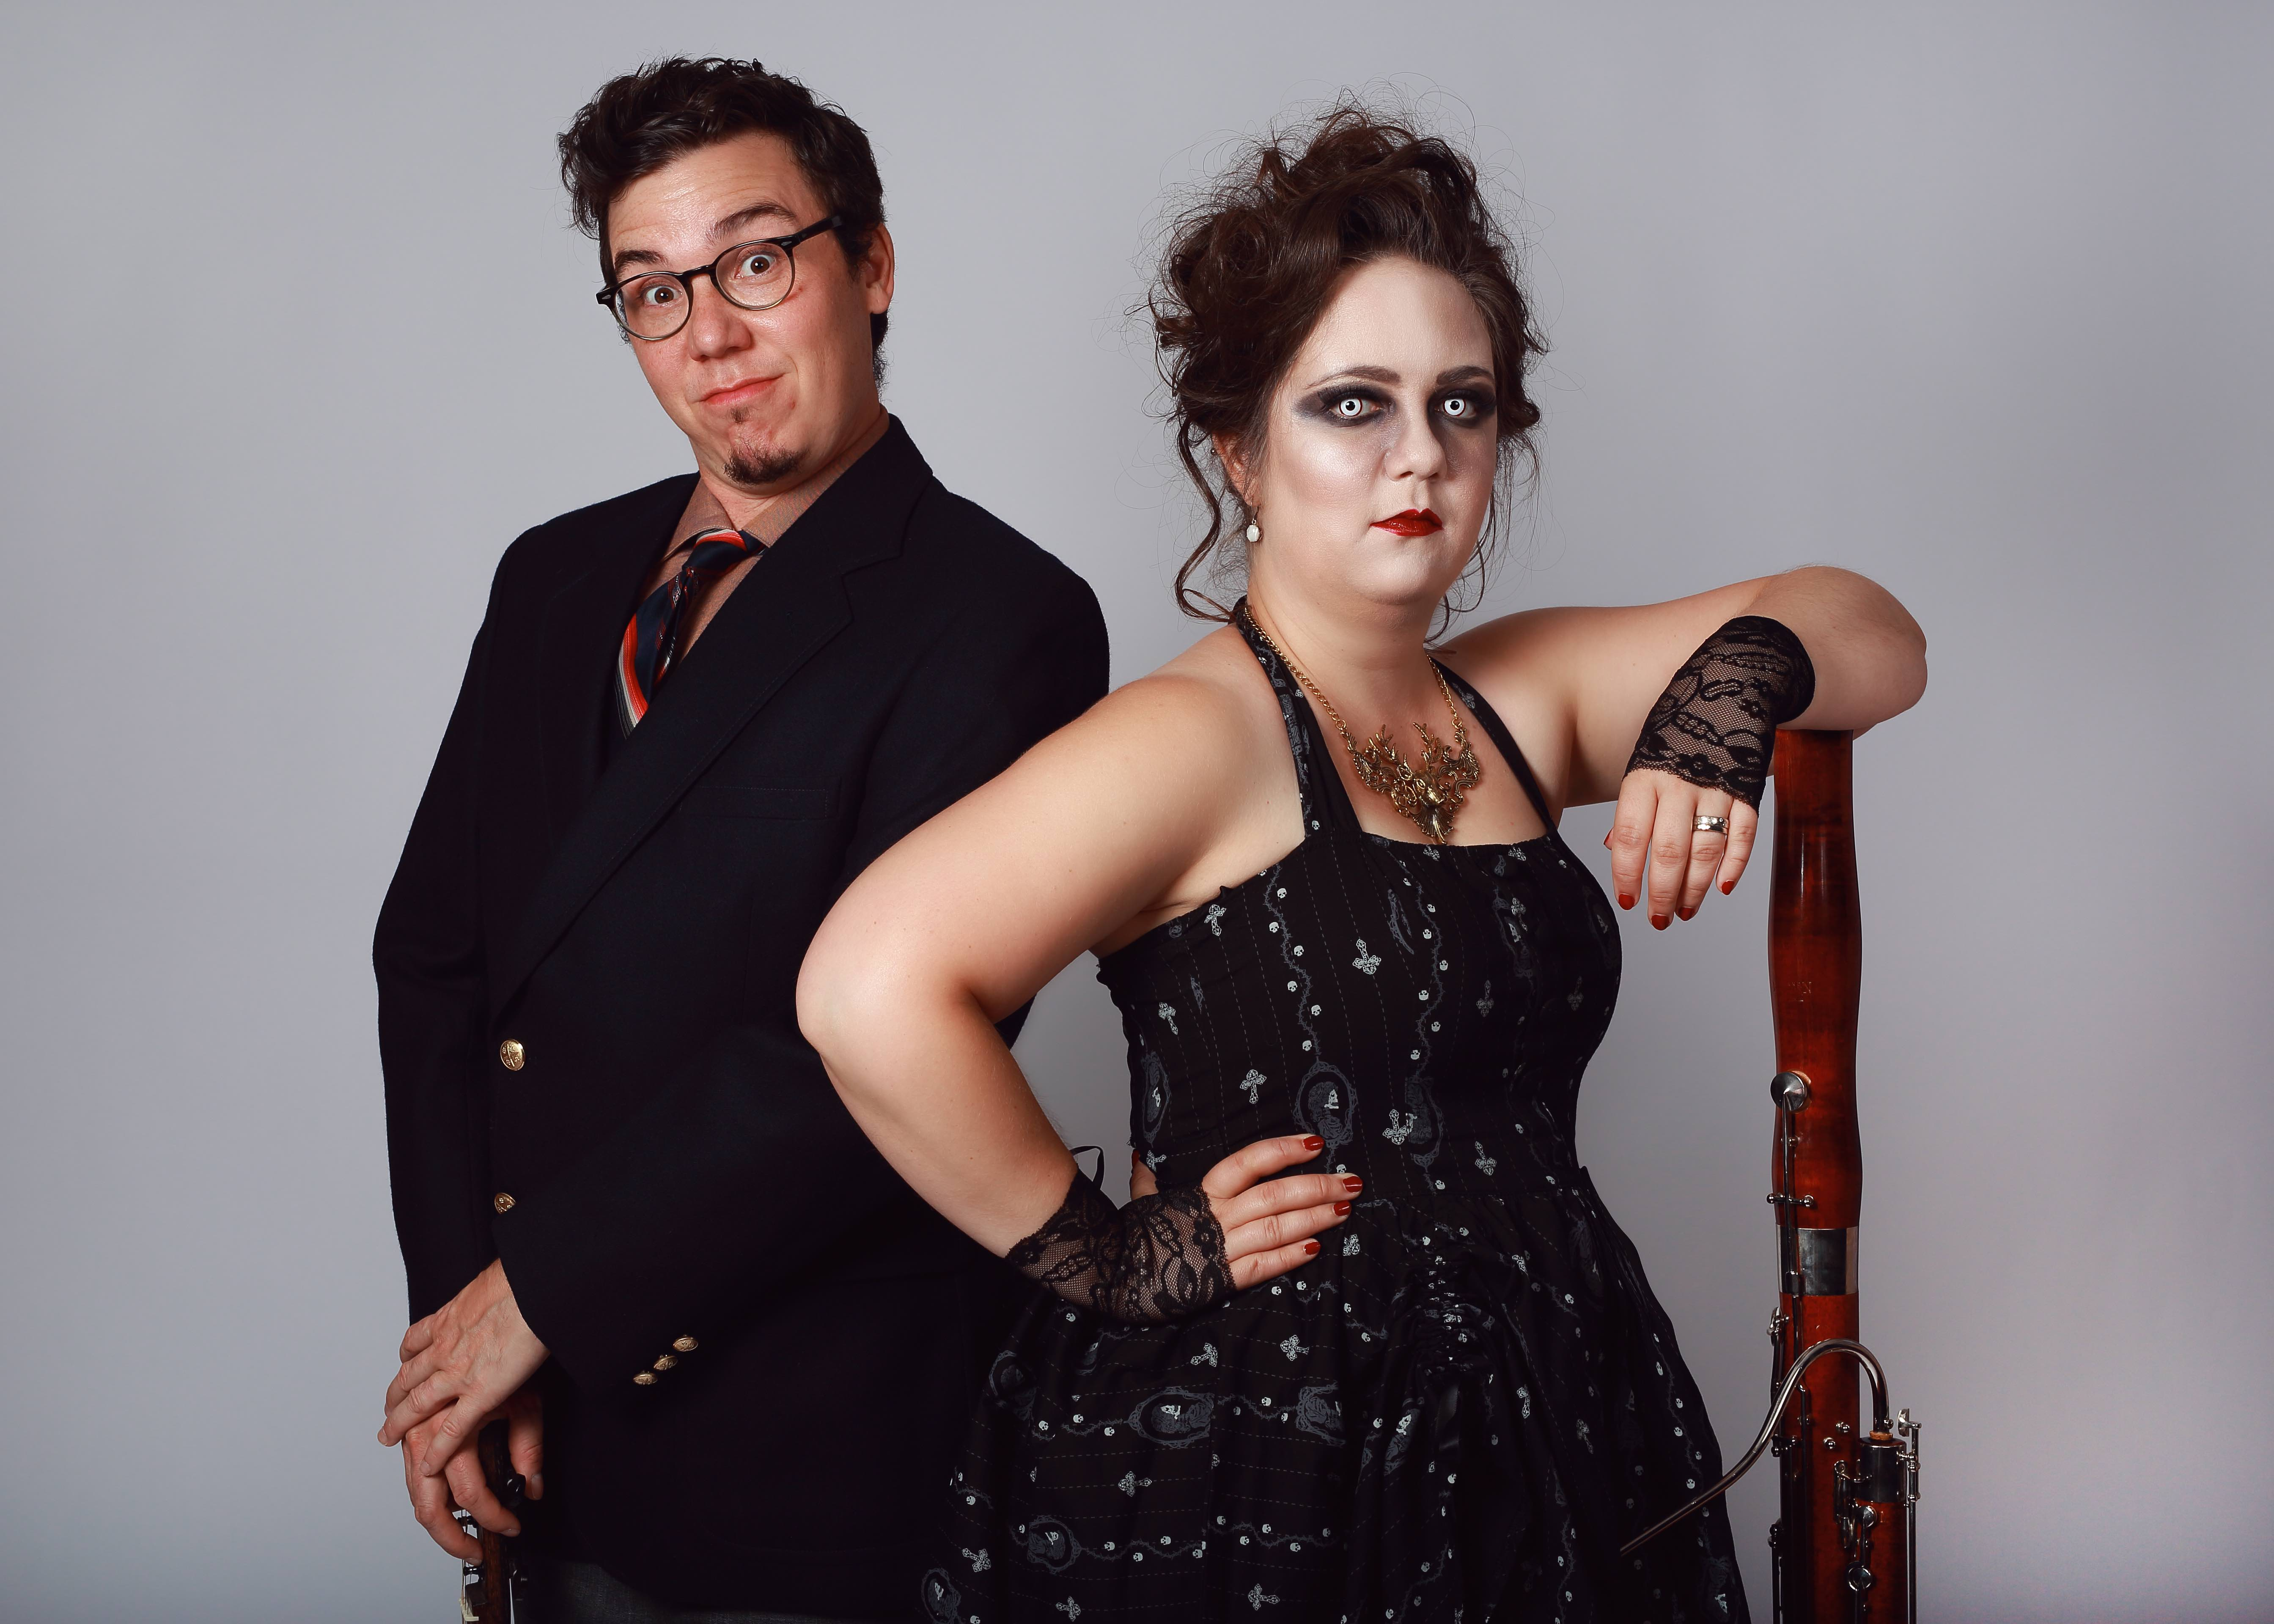 Professor Quack & Grunt by Spy Dénommé-Welch & Catherine Magowan. Photo by Lady Luck Photography